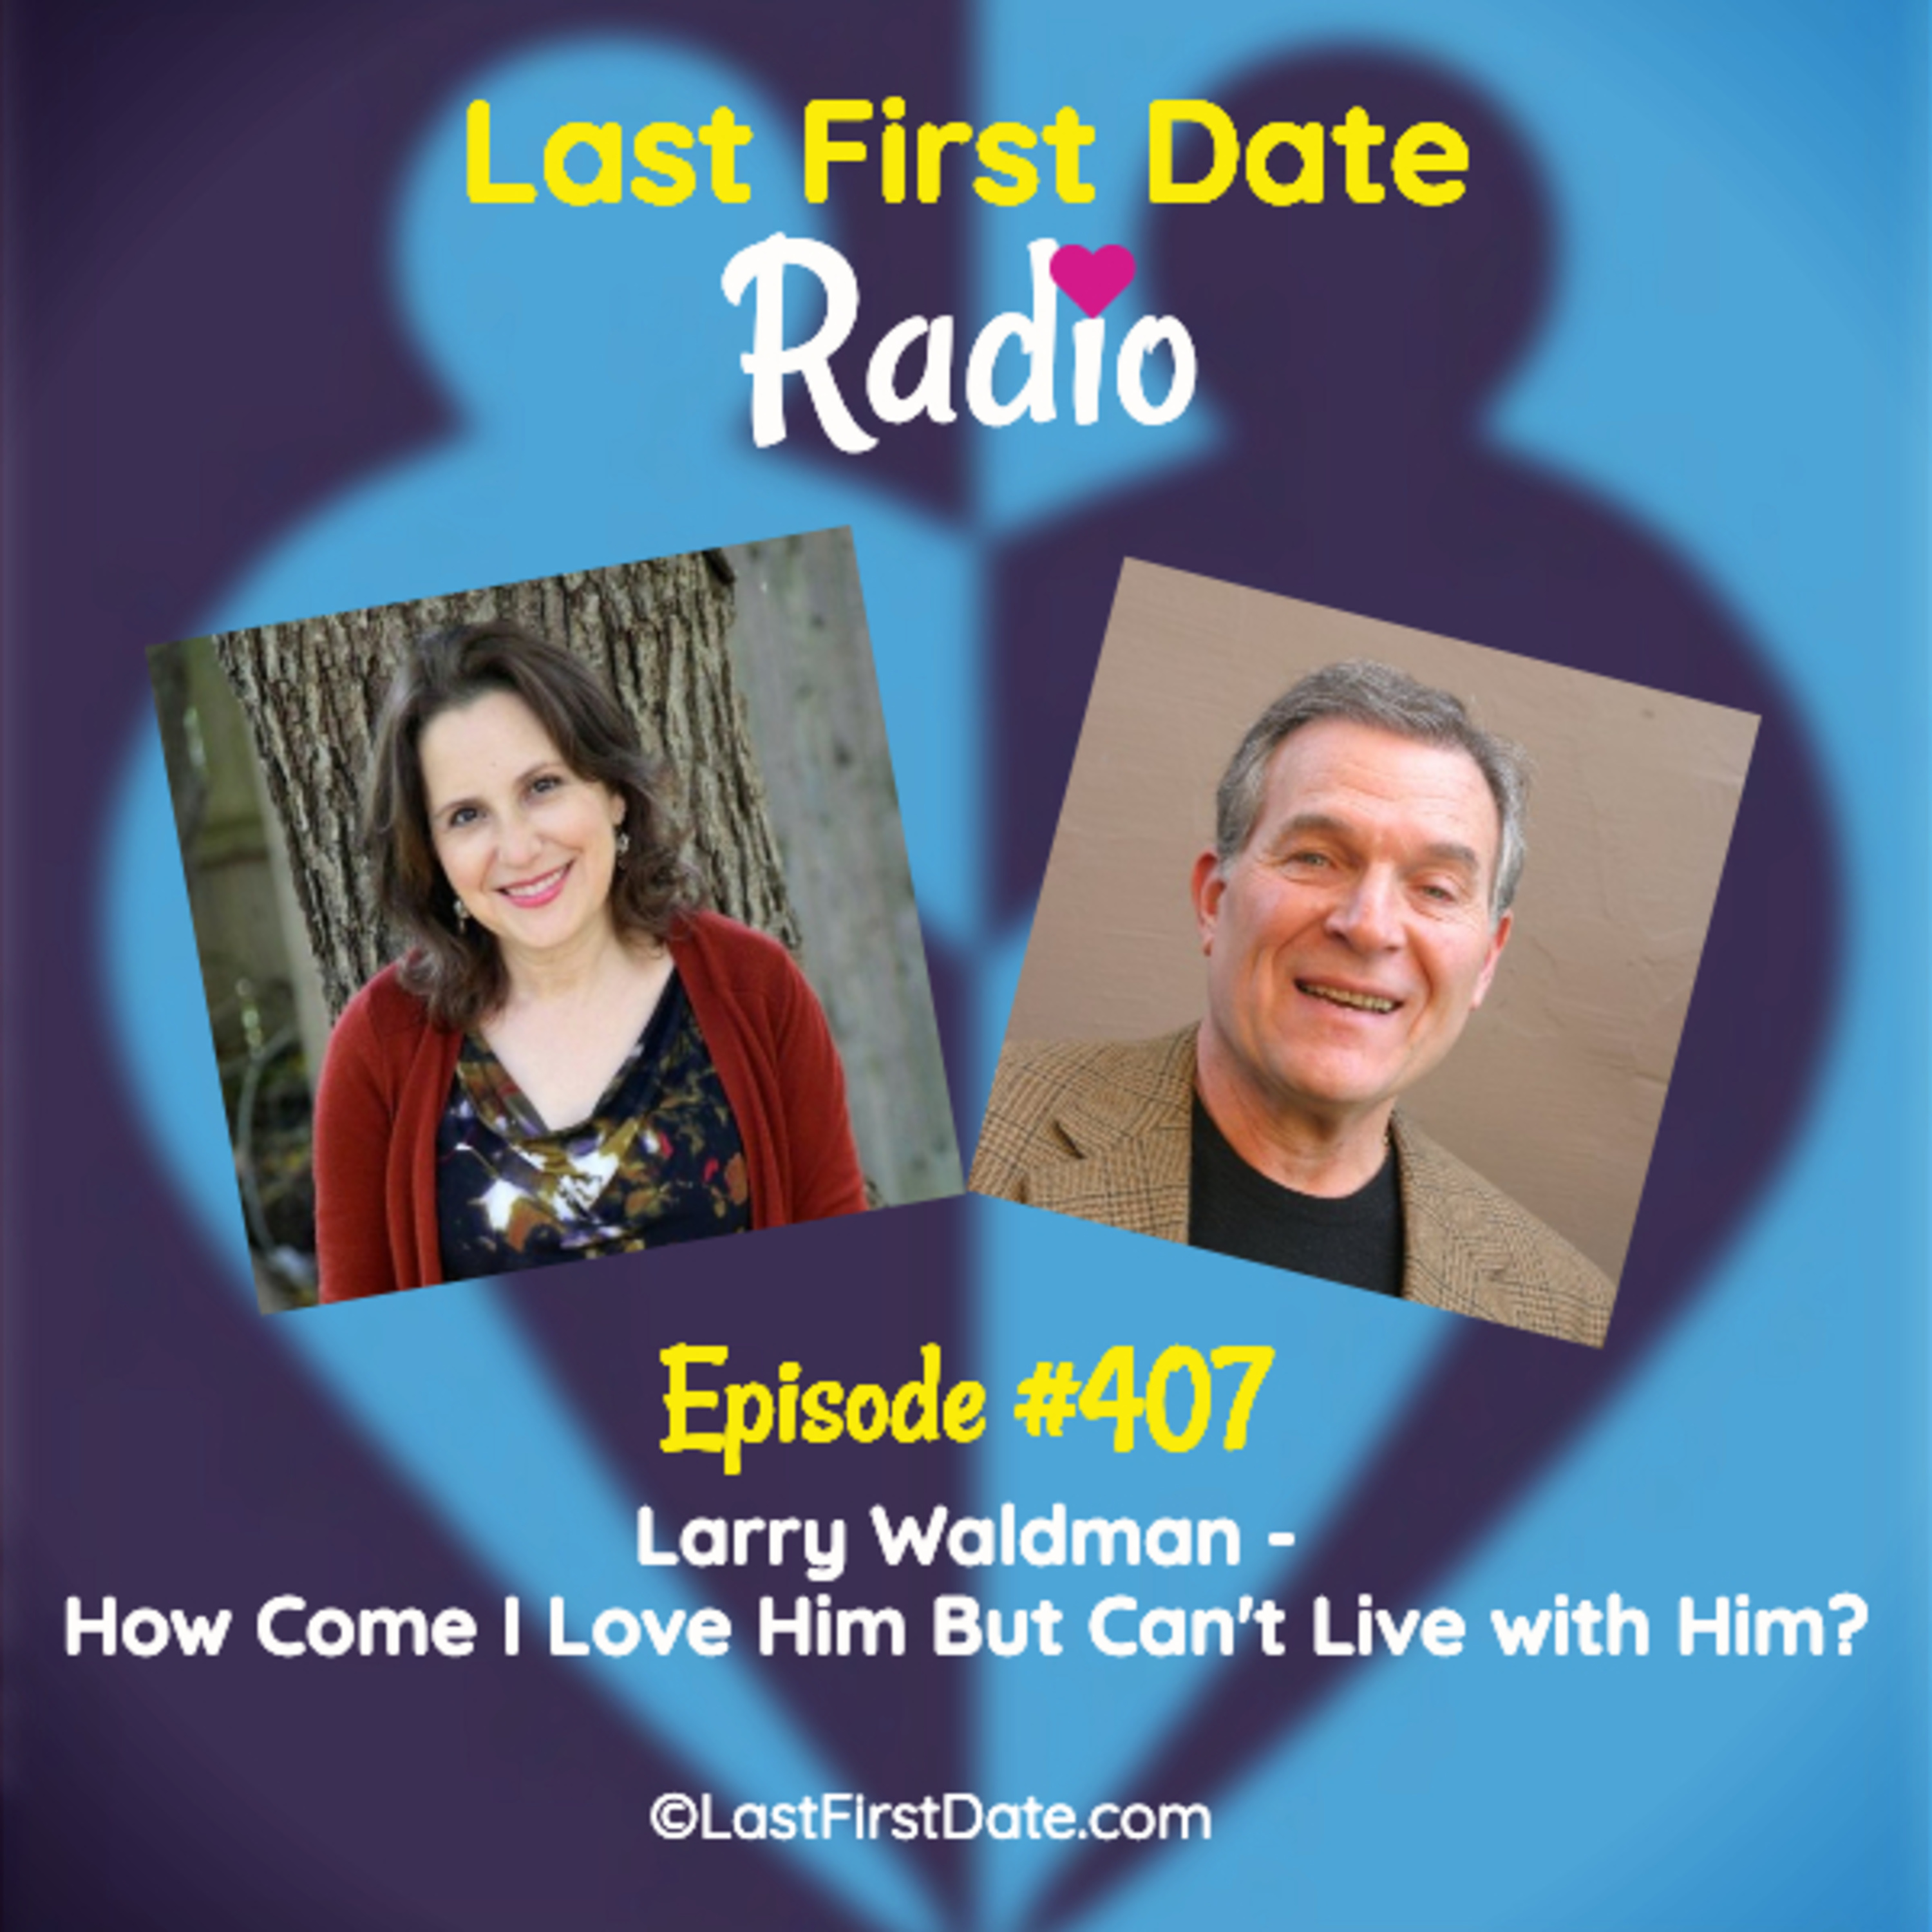 Last First Date Radio - EP 407: Larry Waldman - How Come I Love Him But Can't Live with Him?